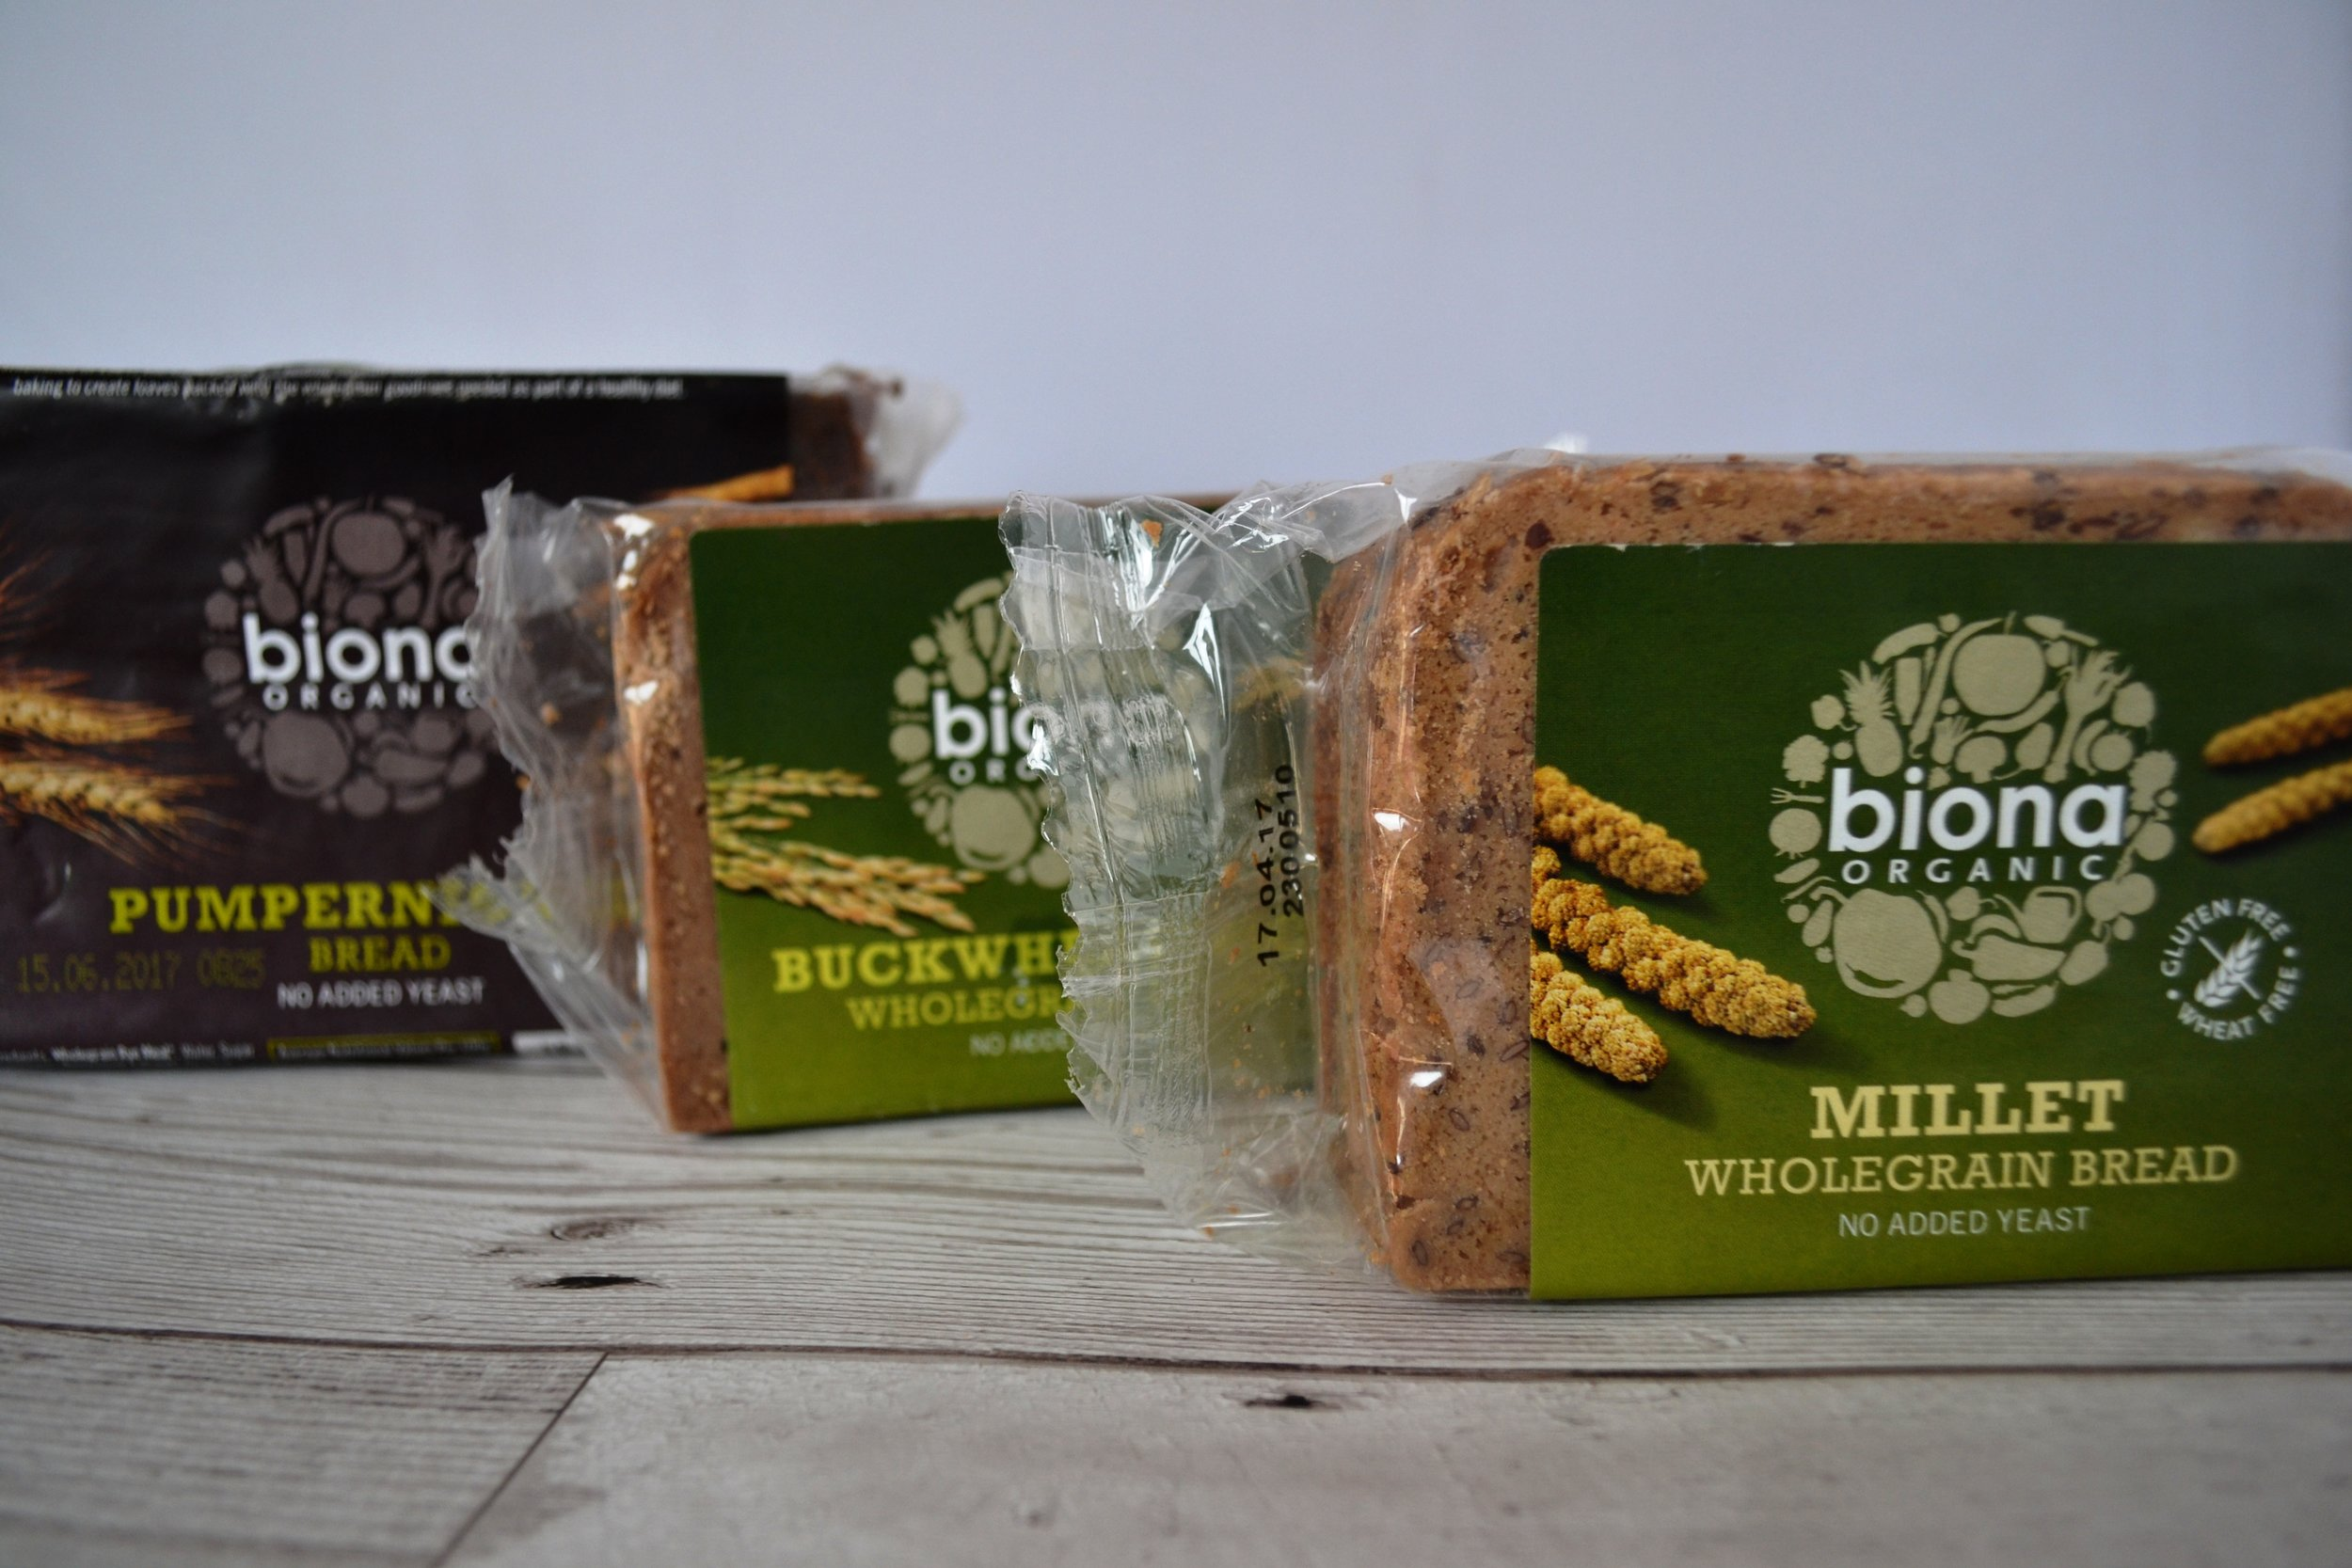 Three breads up for the Tried & Tested challenge this week, all from  Biona.